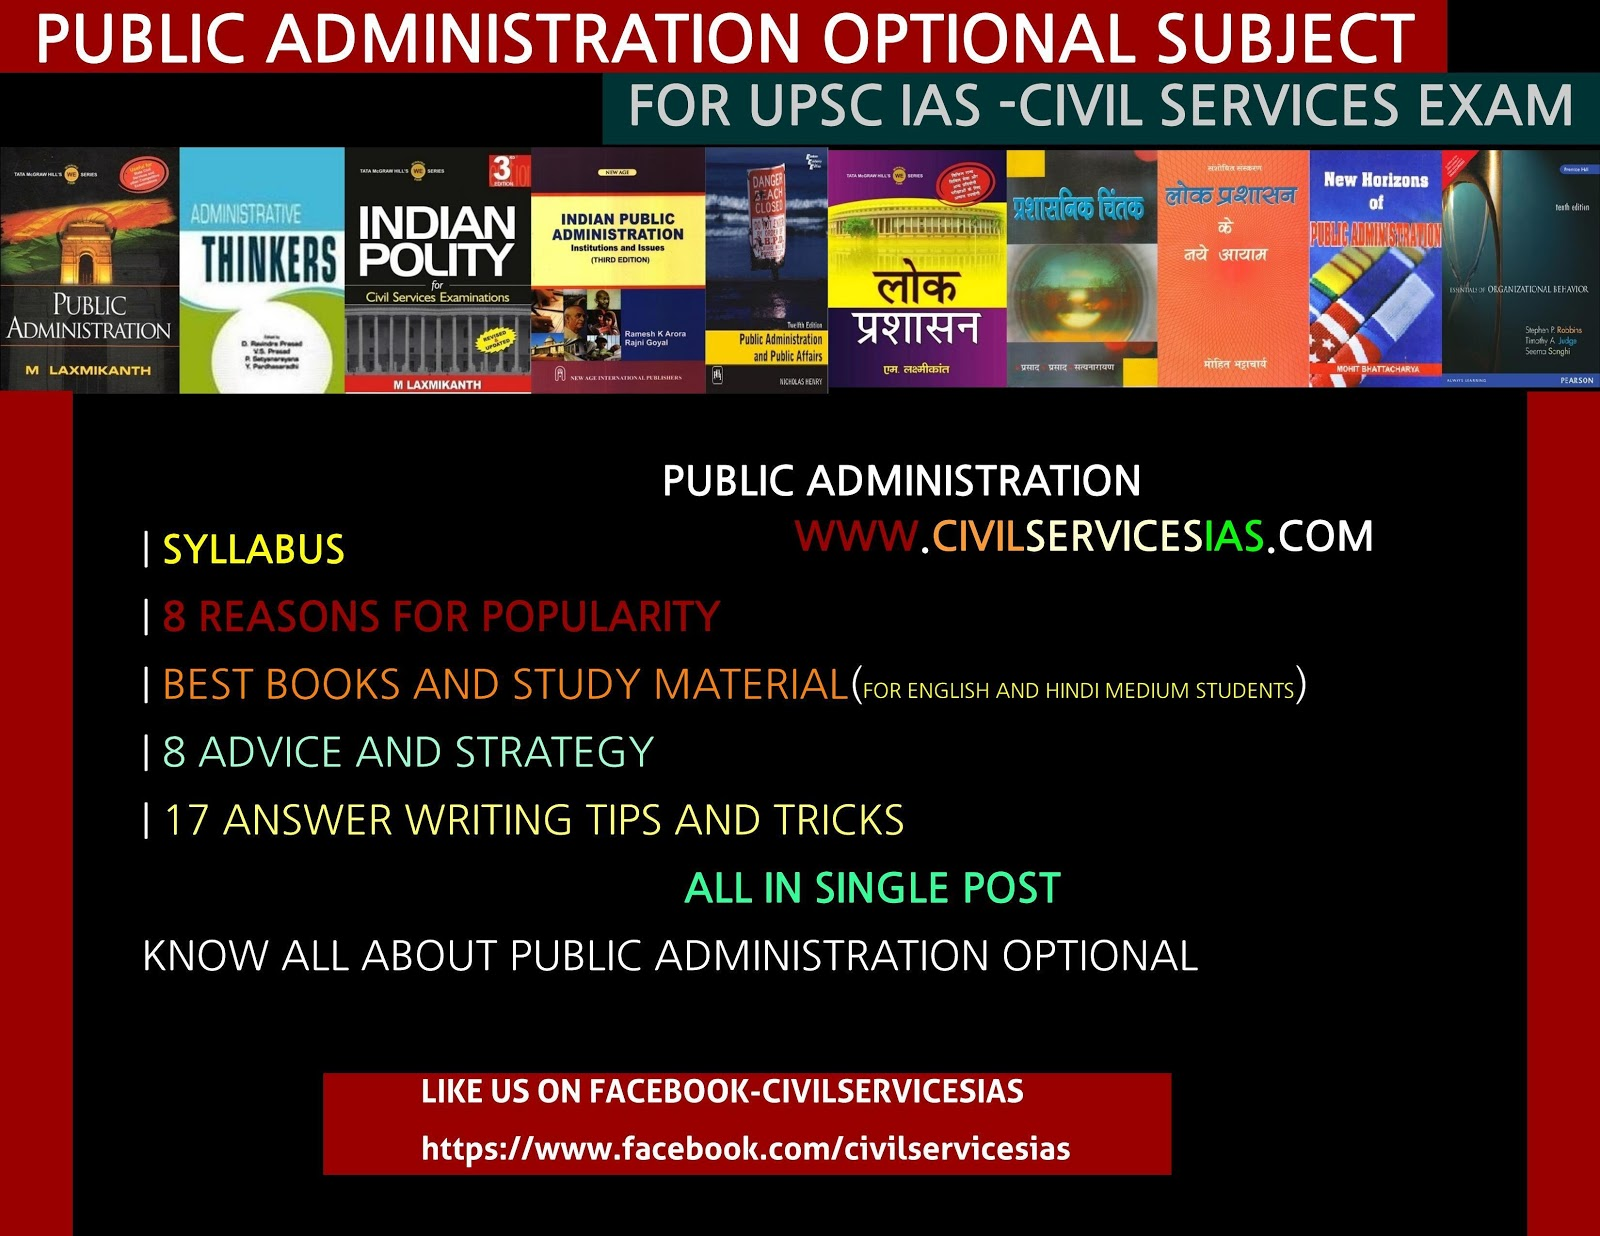 public administrations essay Public administration has two meanings first it refers to the implementation (or putting into action) of government policy second, it is an academic discipline that studies this implementation and prepares civil servants for working in the public service (the non-political part of the government.